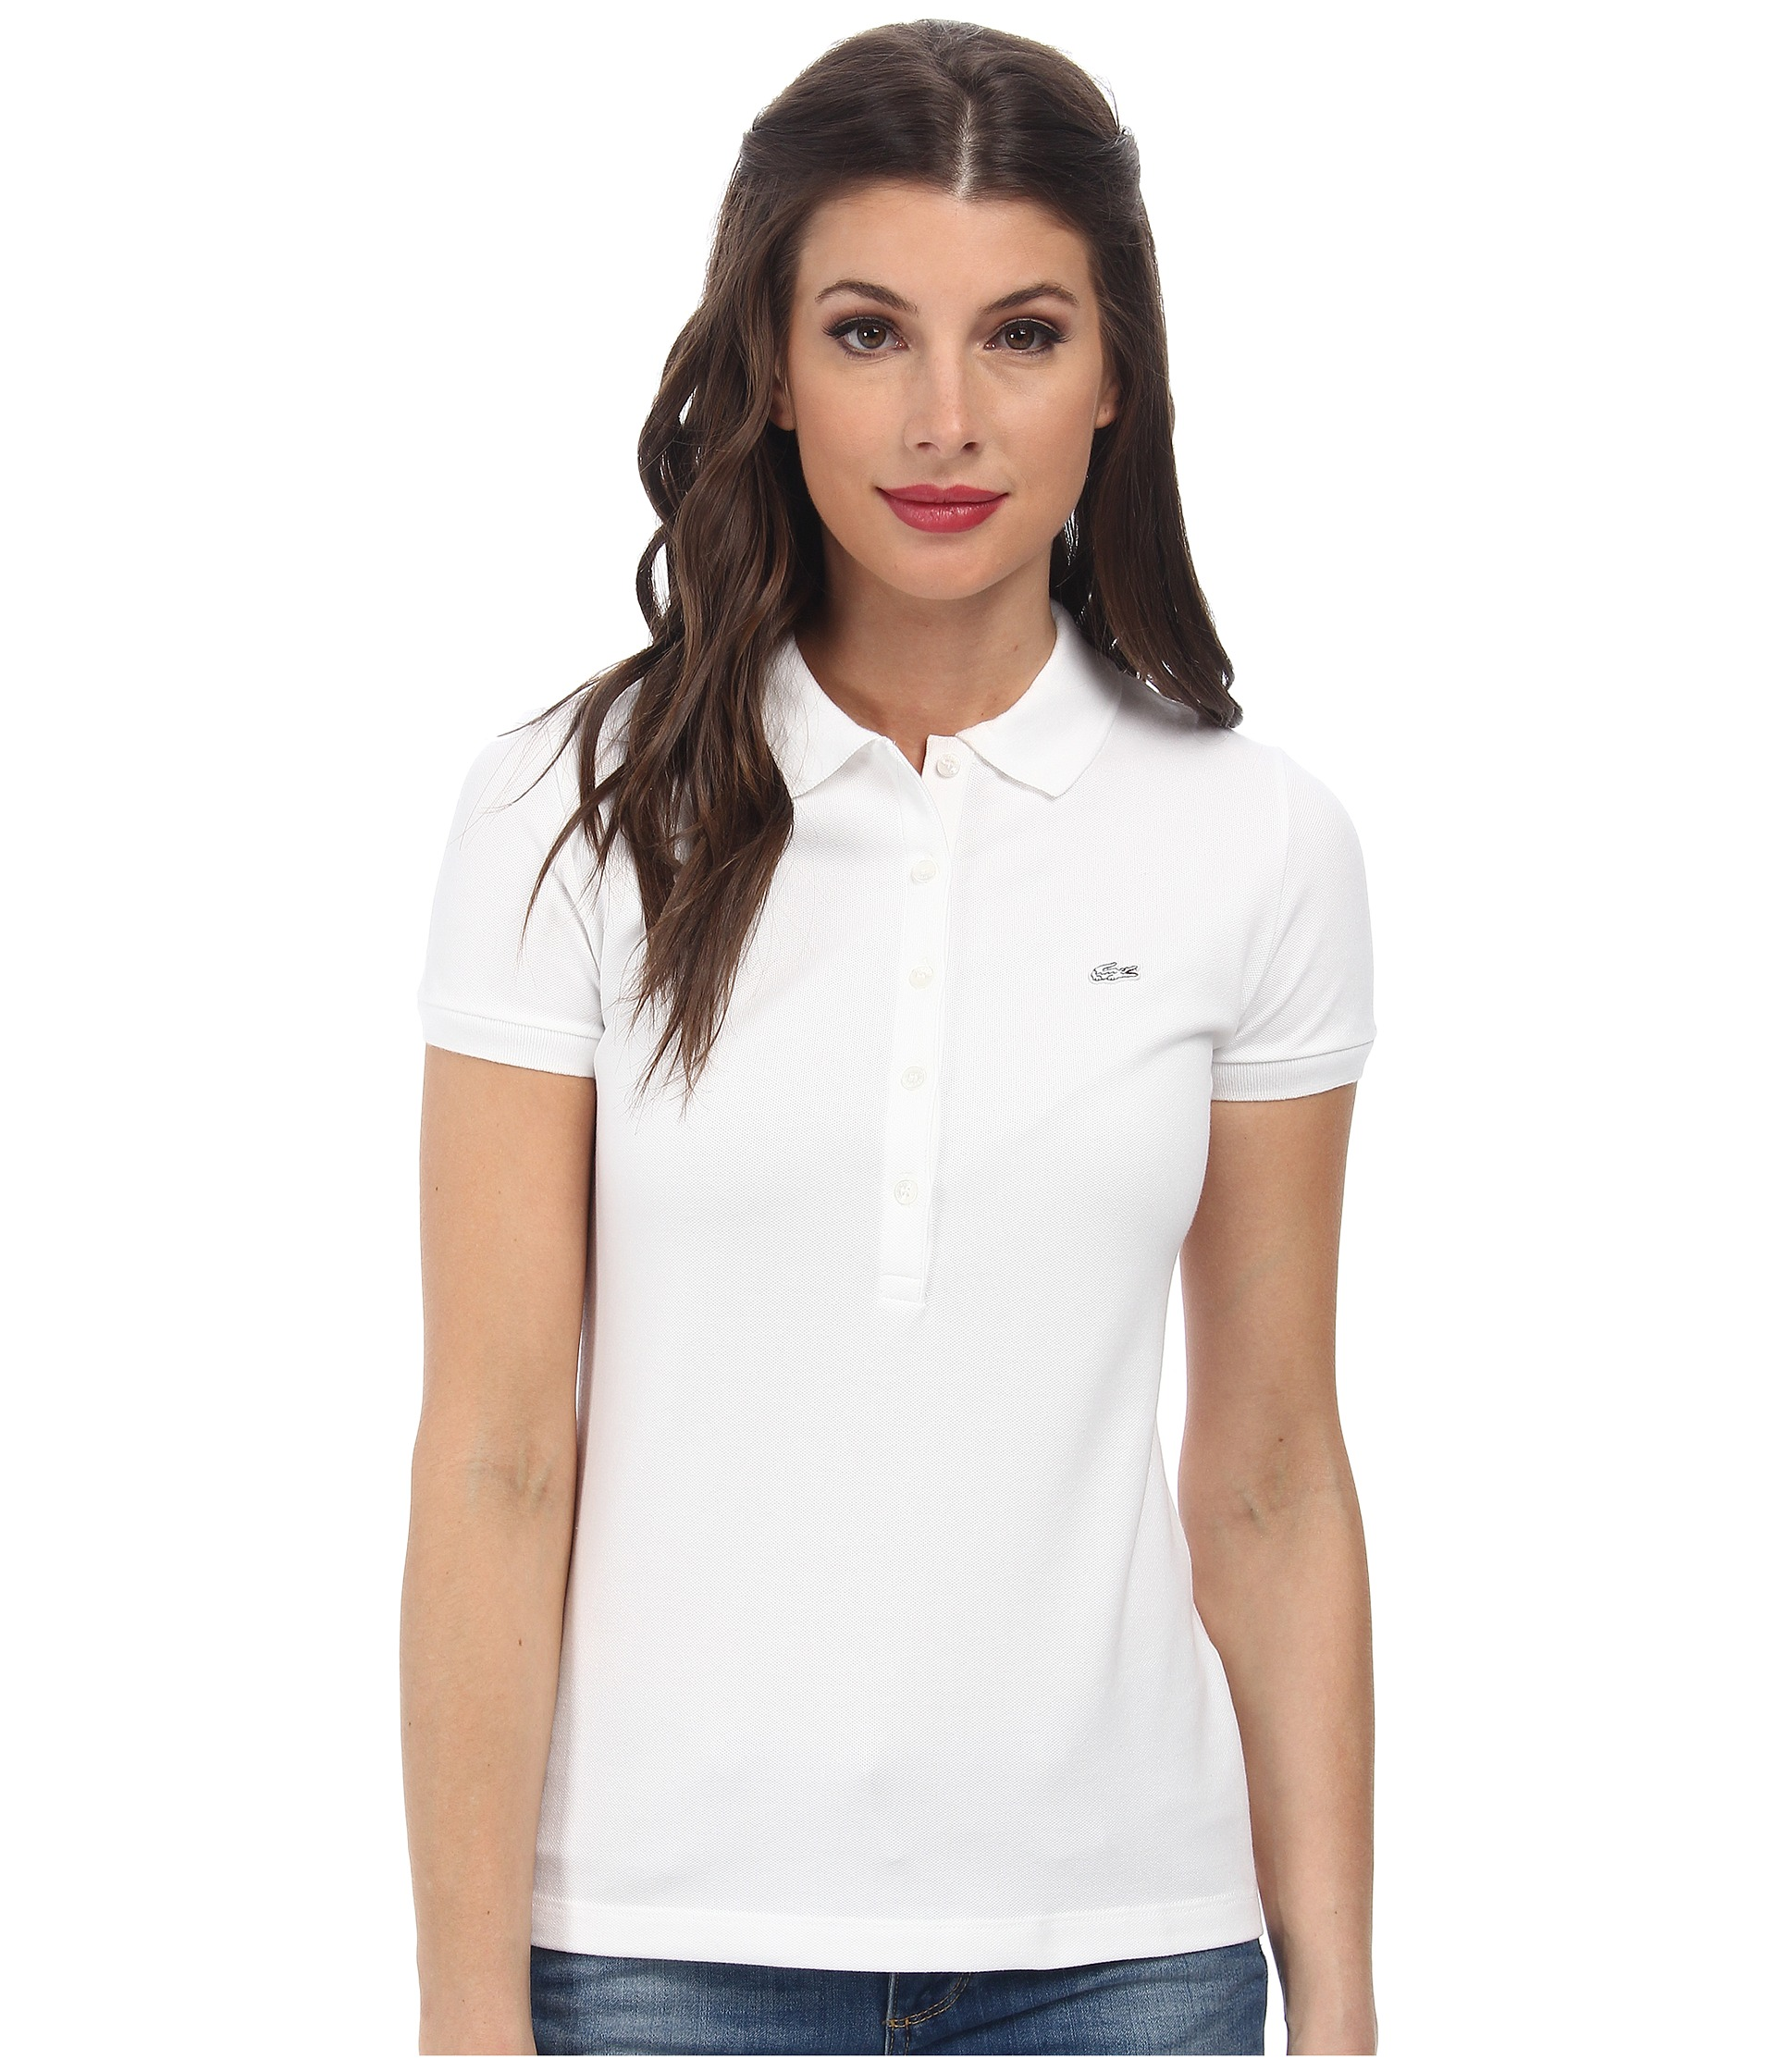 Lacoste short sleeve slim fit stretch pique polo shirt at for Short sleeve lacoste shirt